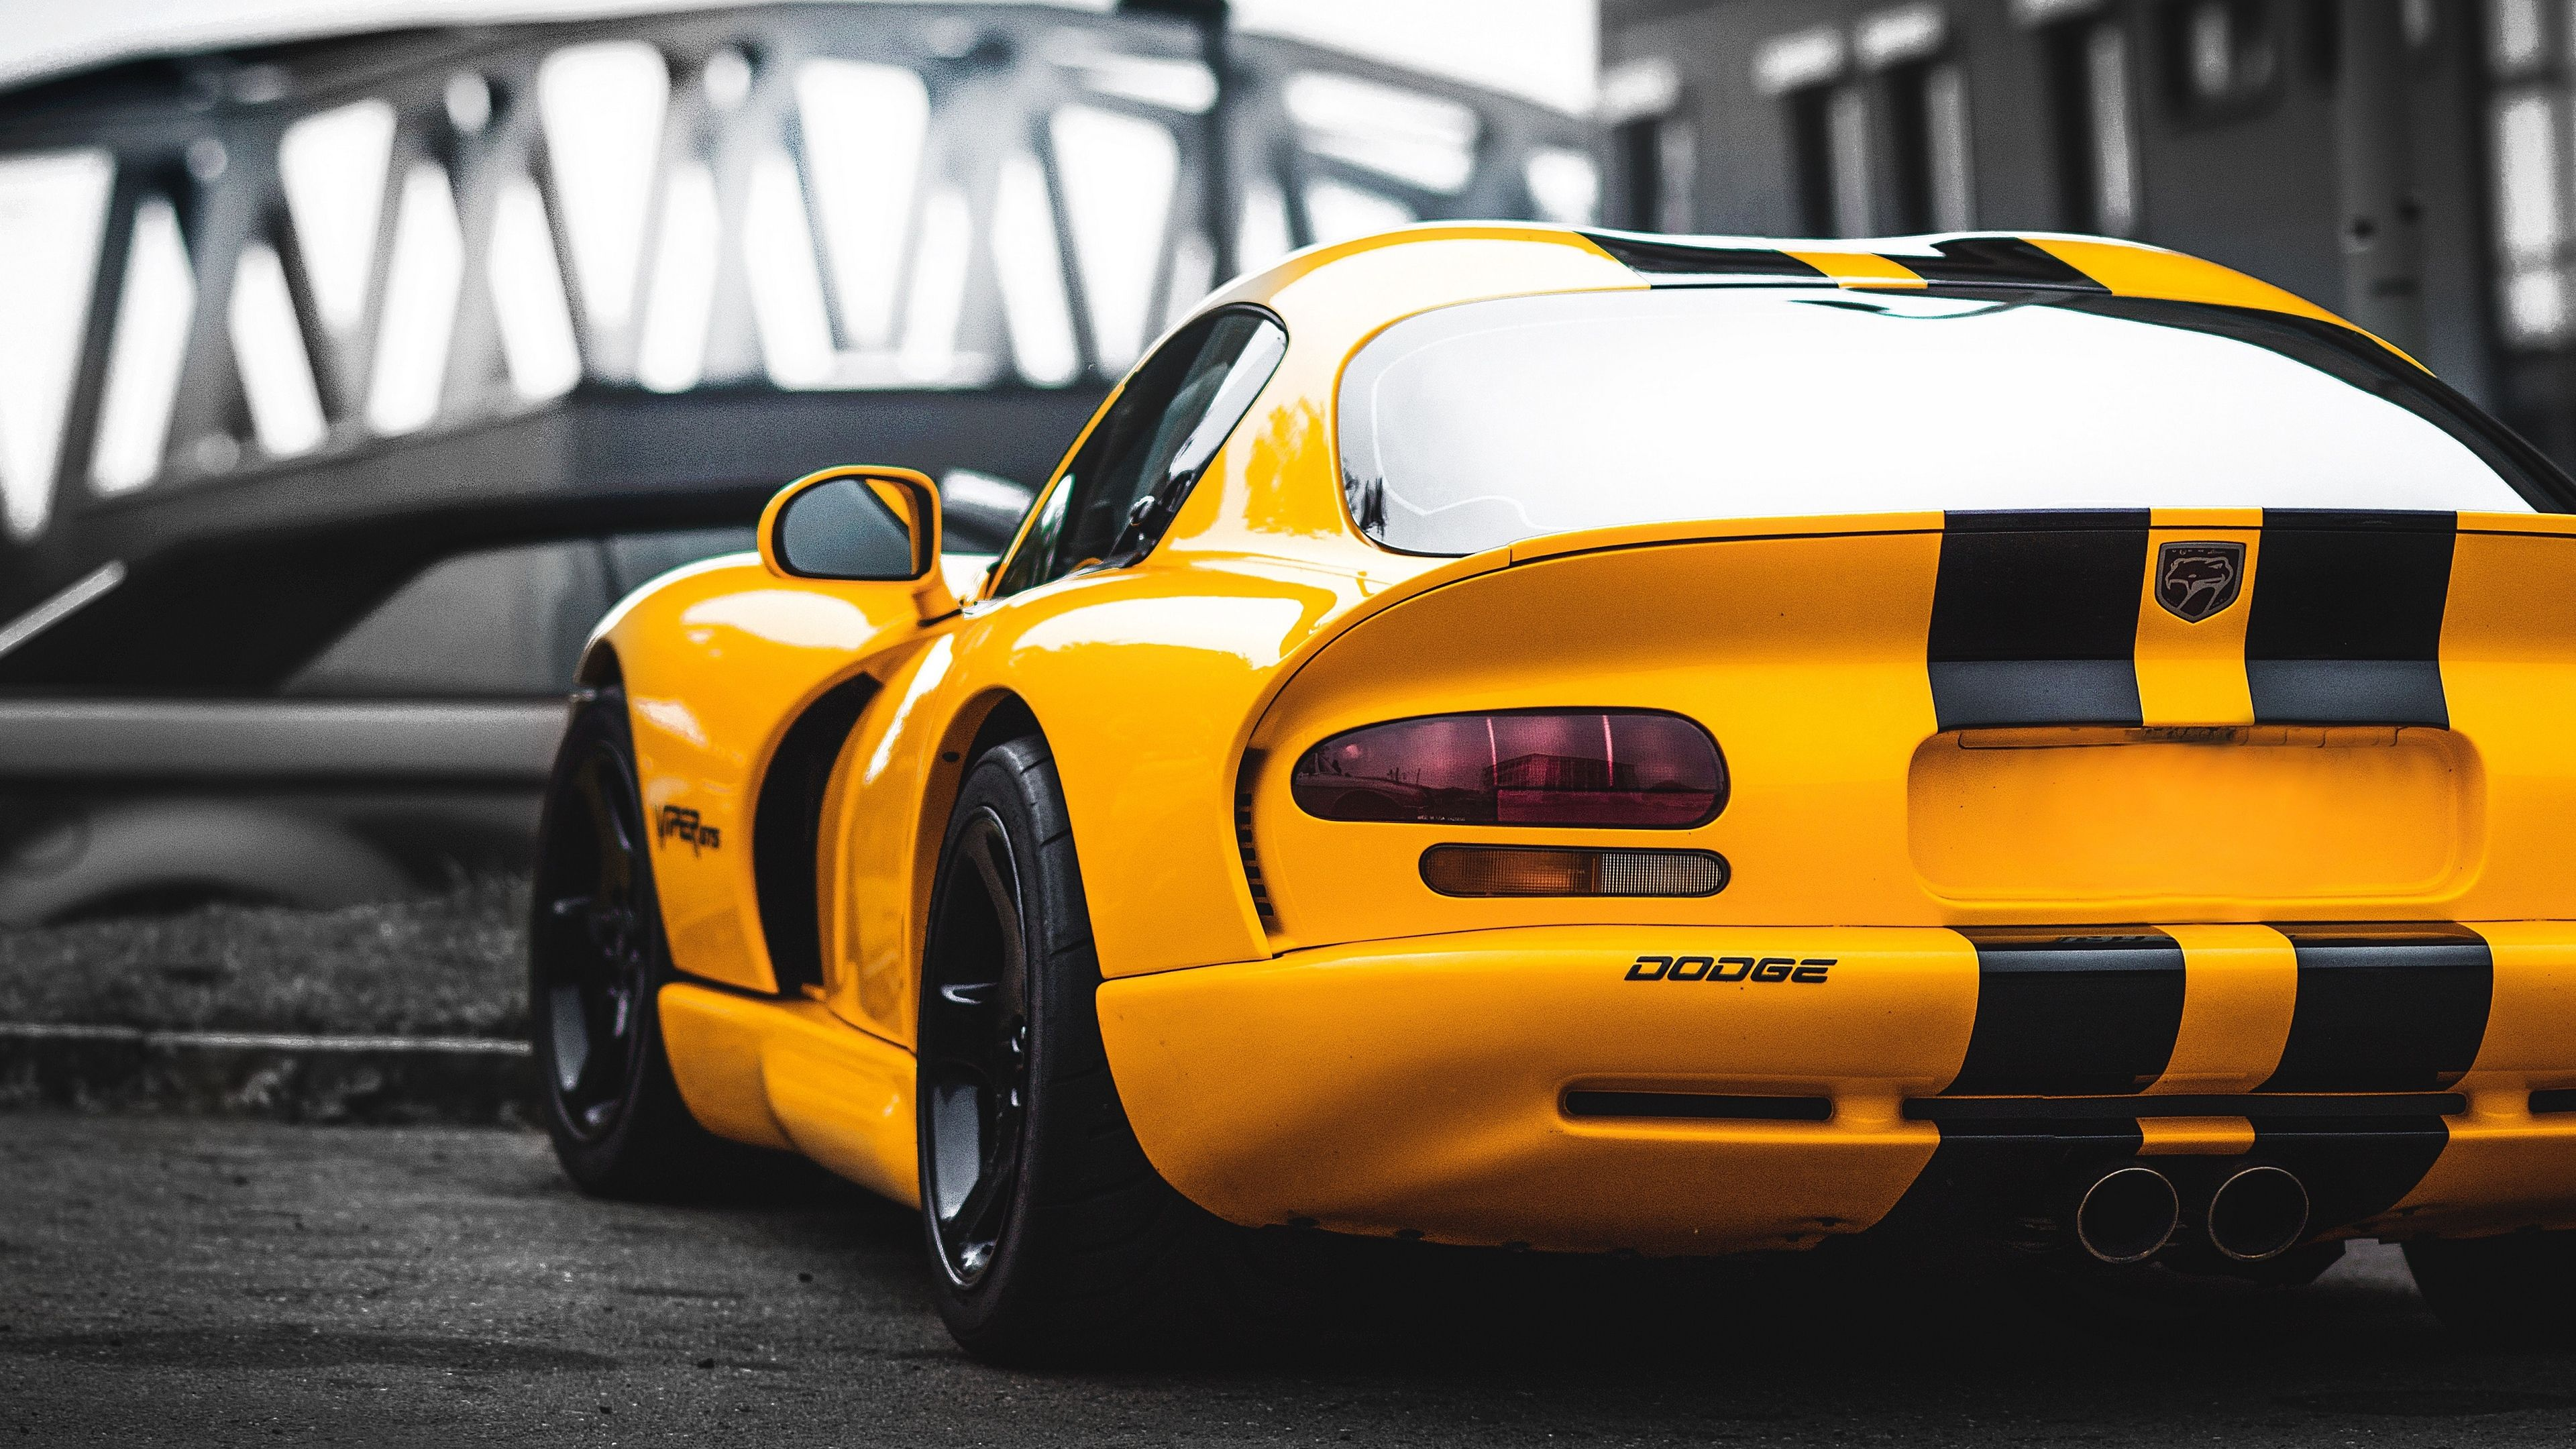 Viper Wallpapers Top Free Viper Backgrounds Wallpaperaccess